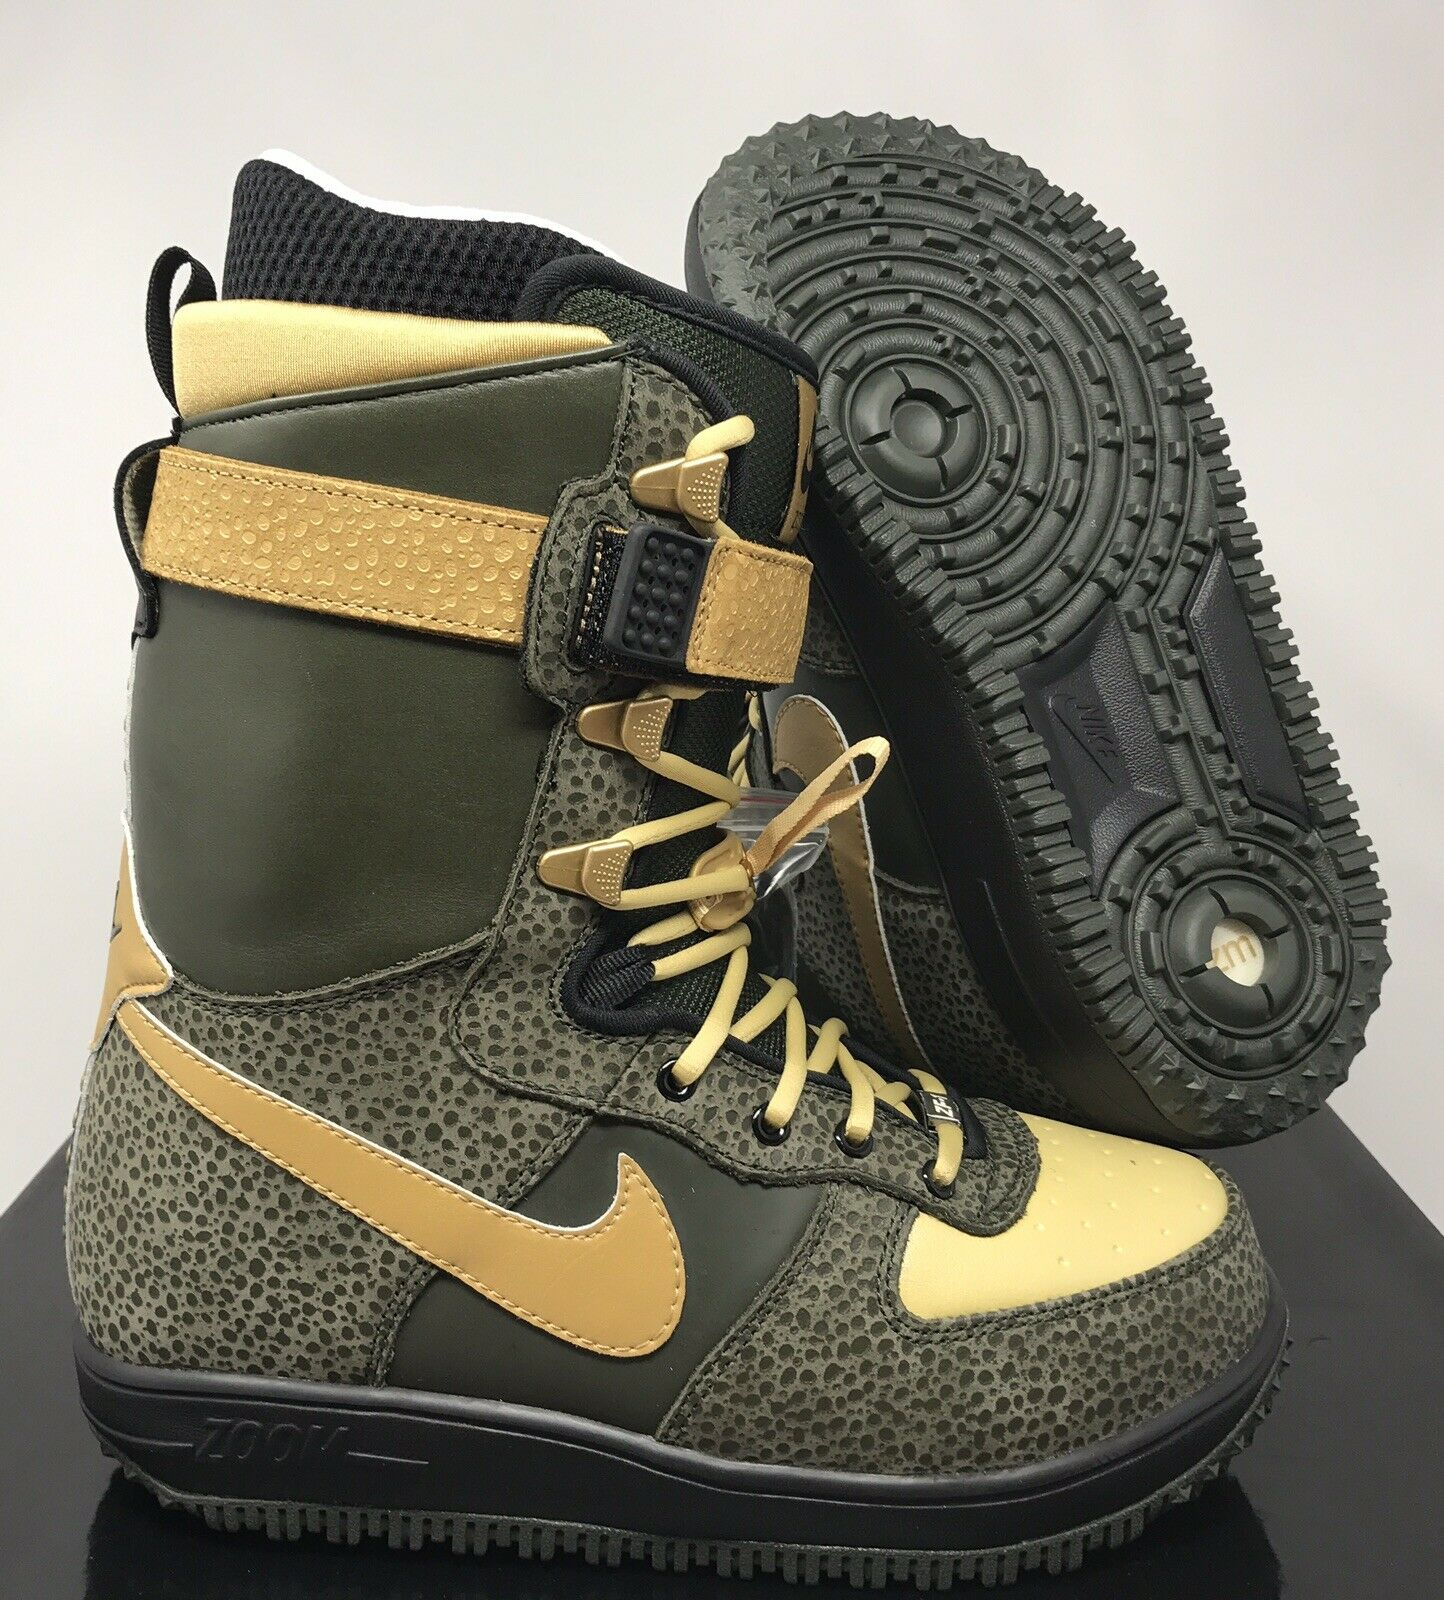 NIKE 2008 ZOOM FORCE 1 SNOWBOARDING BOOTS DARK ARMY-gold SZ 8.5 [334841-371]